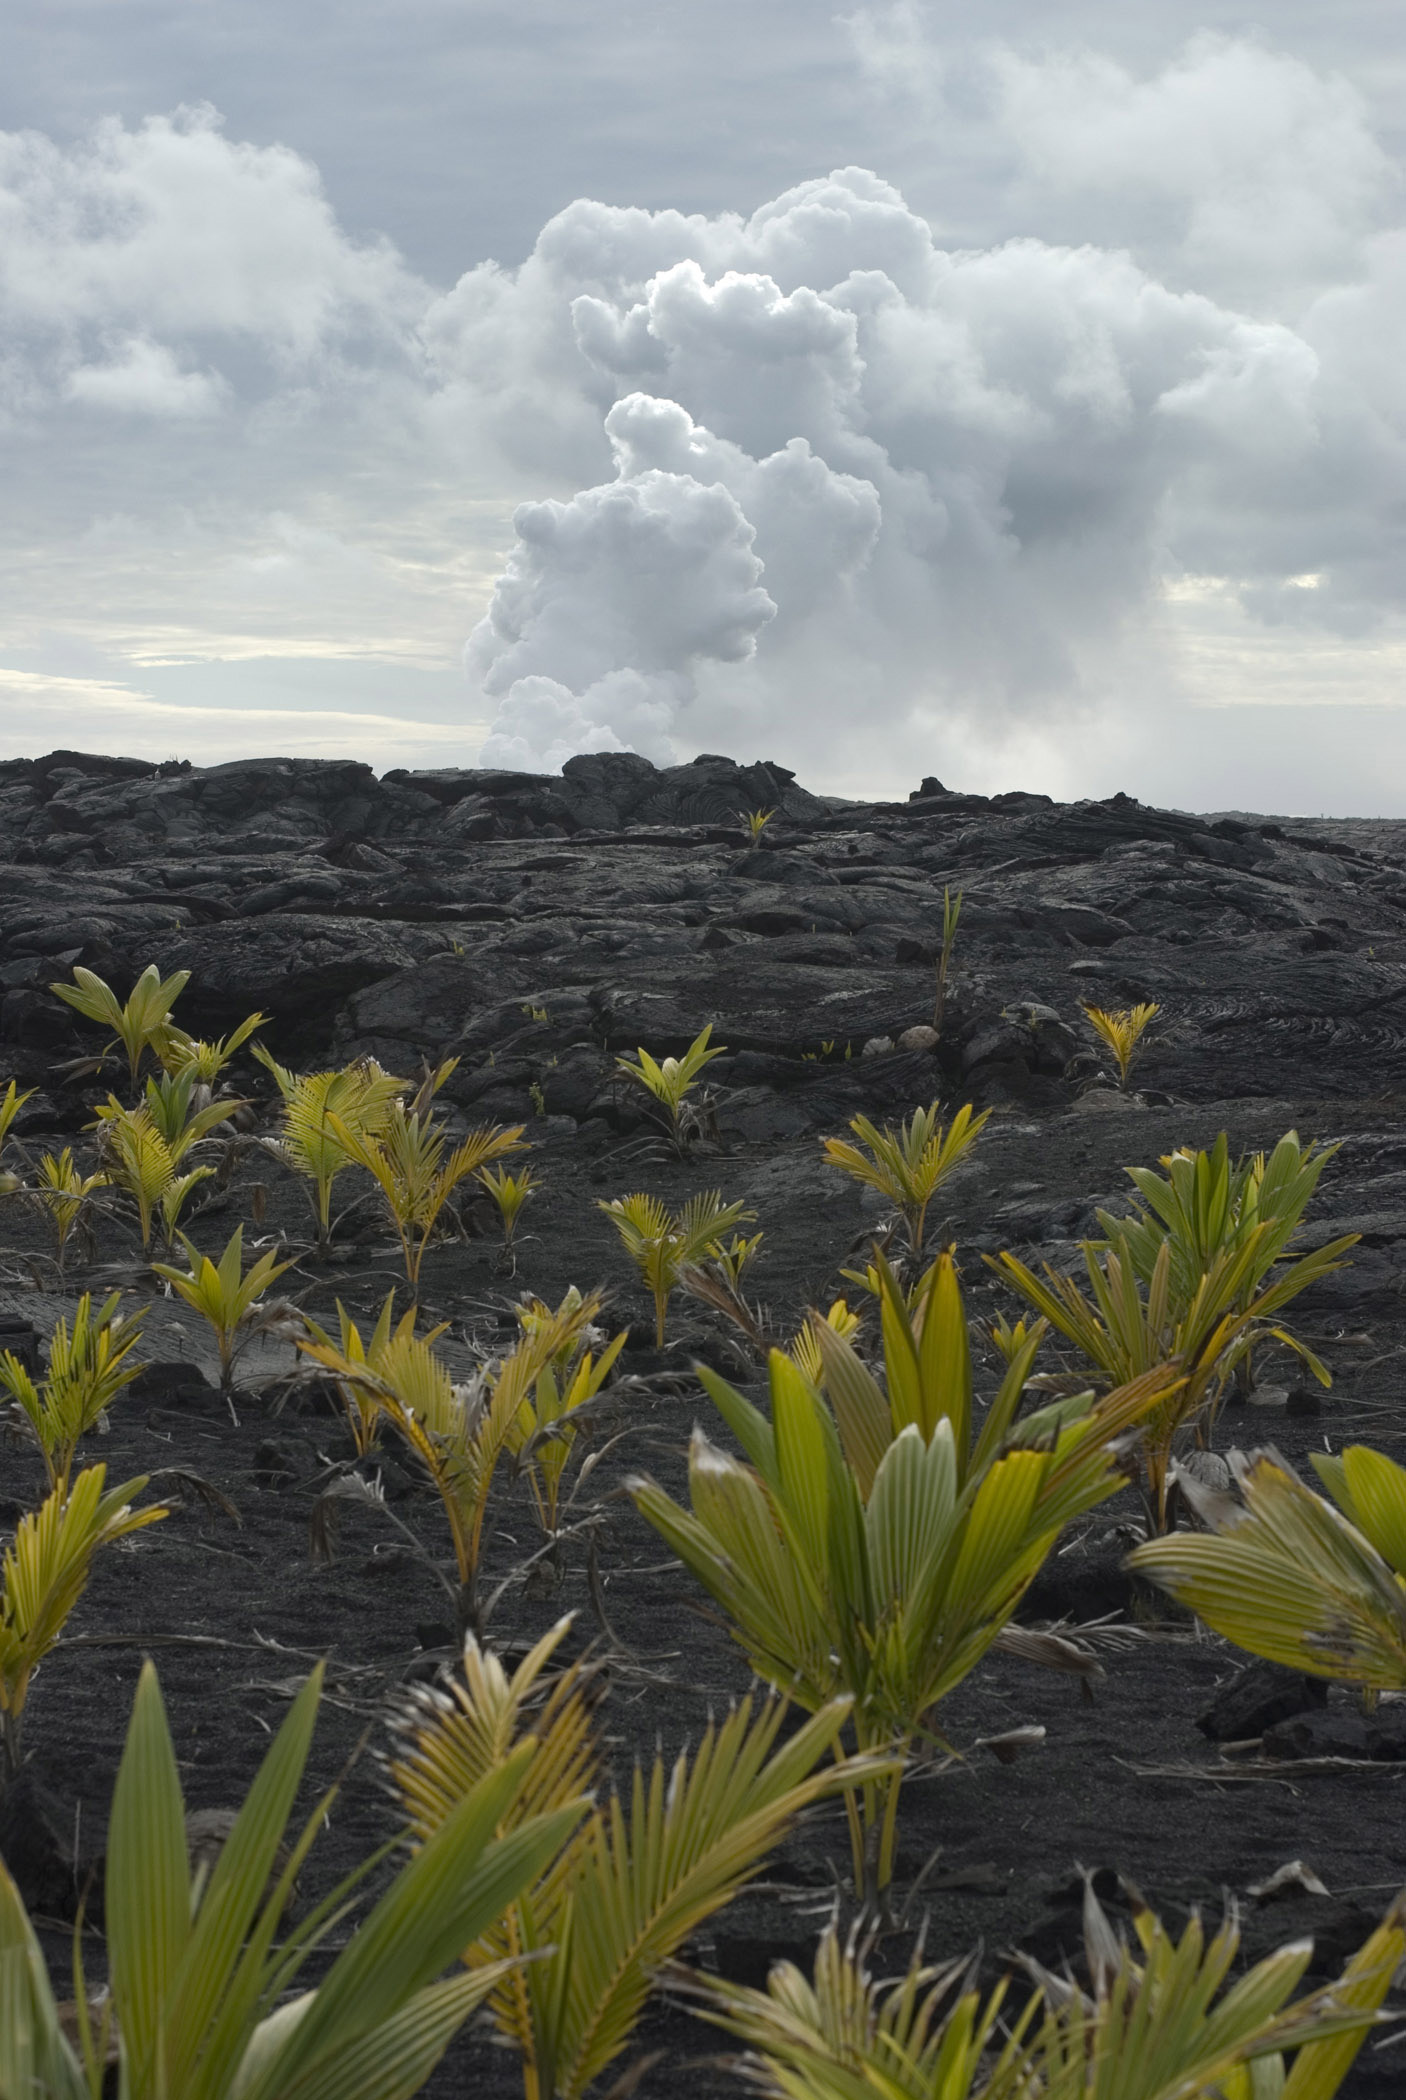 Free Stock Photo Of Small Coconut Plants On Hardened Lava